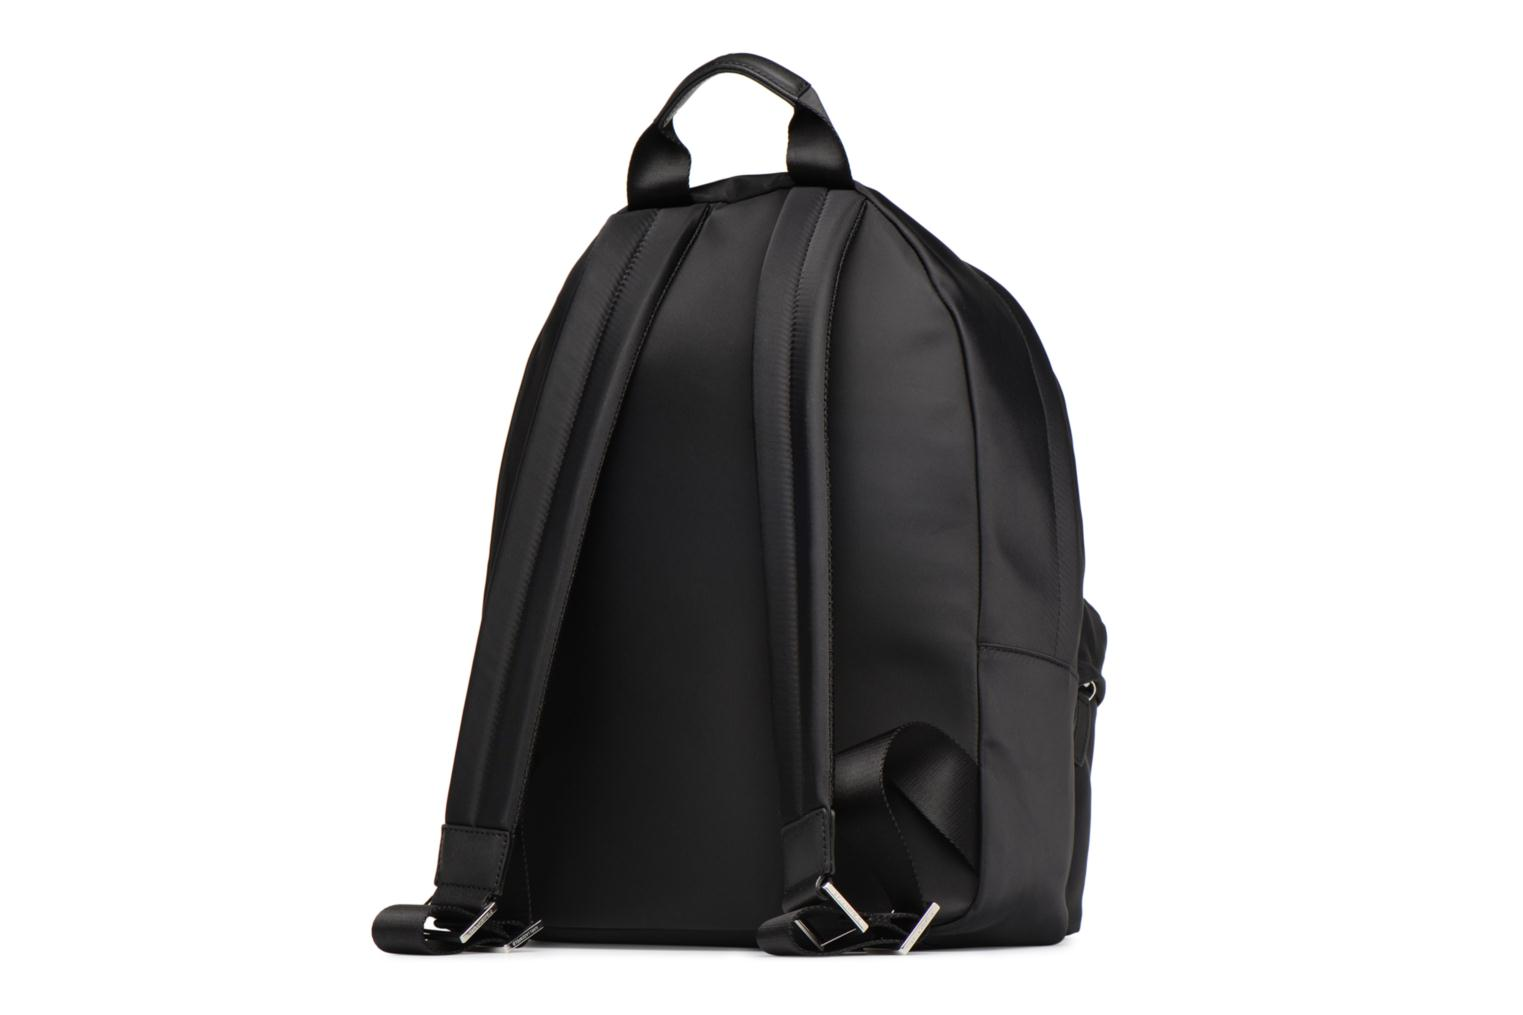 K LAGERFELD Black NYLON KARL IKONIK BACKPACK qHFwfWWB1